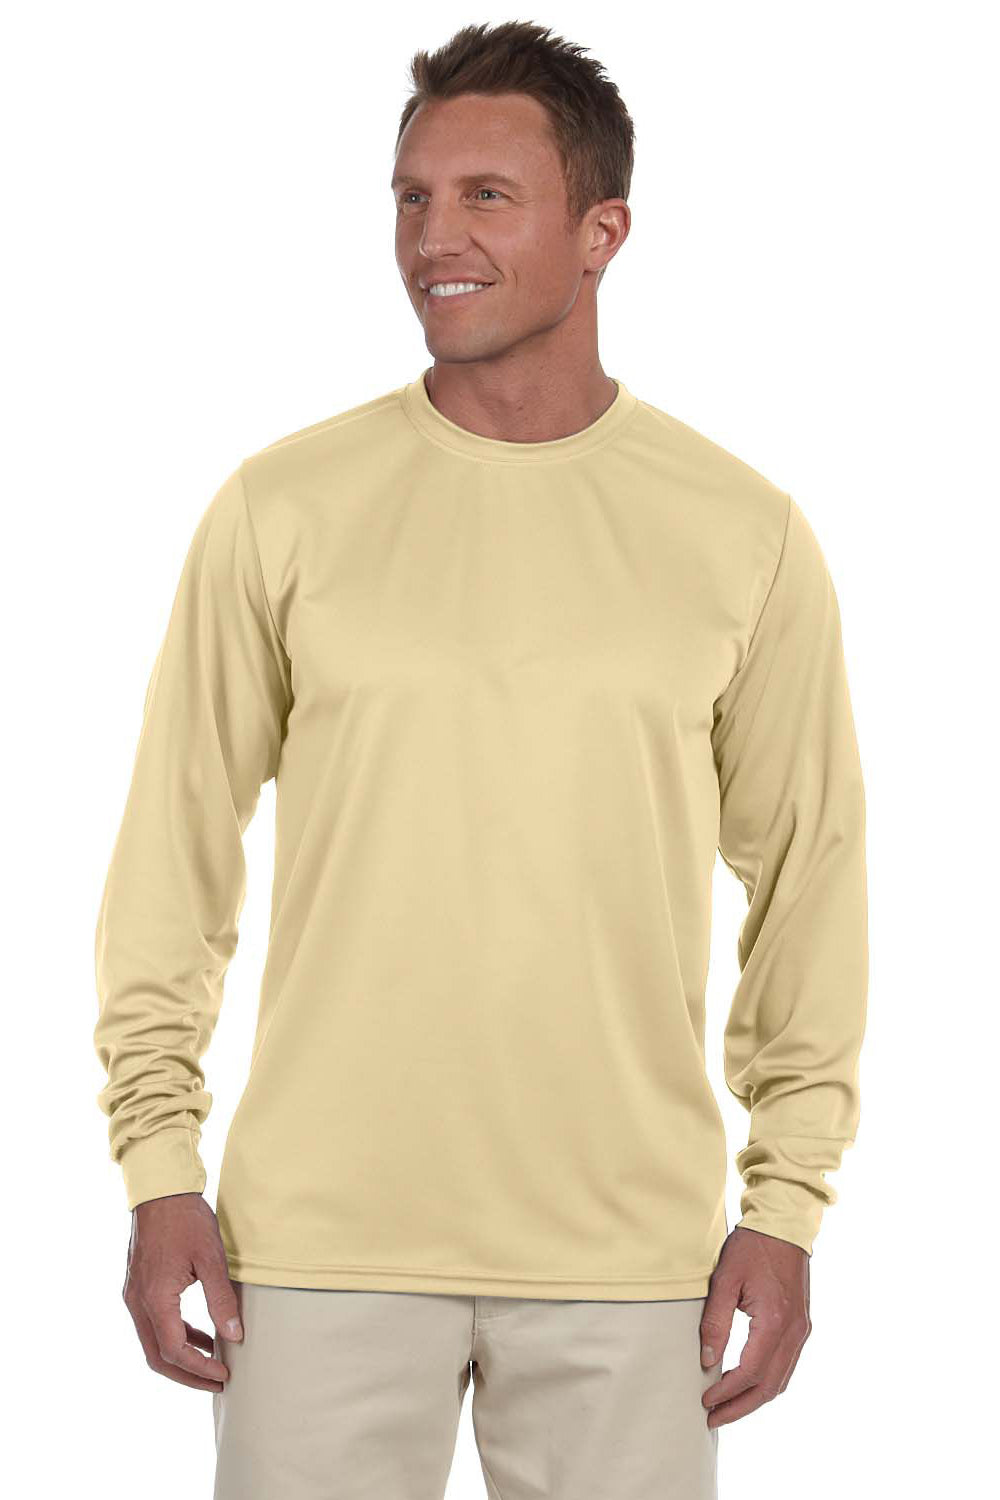 Augusta Sportswear 788 Mens Moisture Wicking Long Sleeve Crewneck T-Shirt Vegas Gold Front